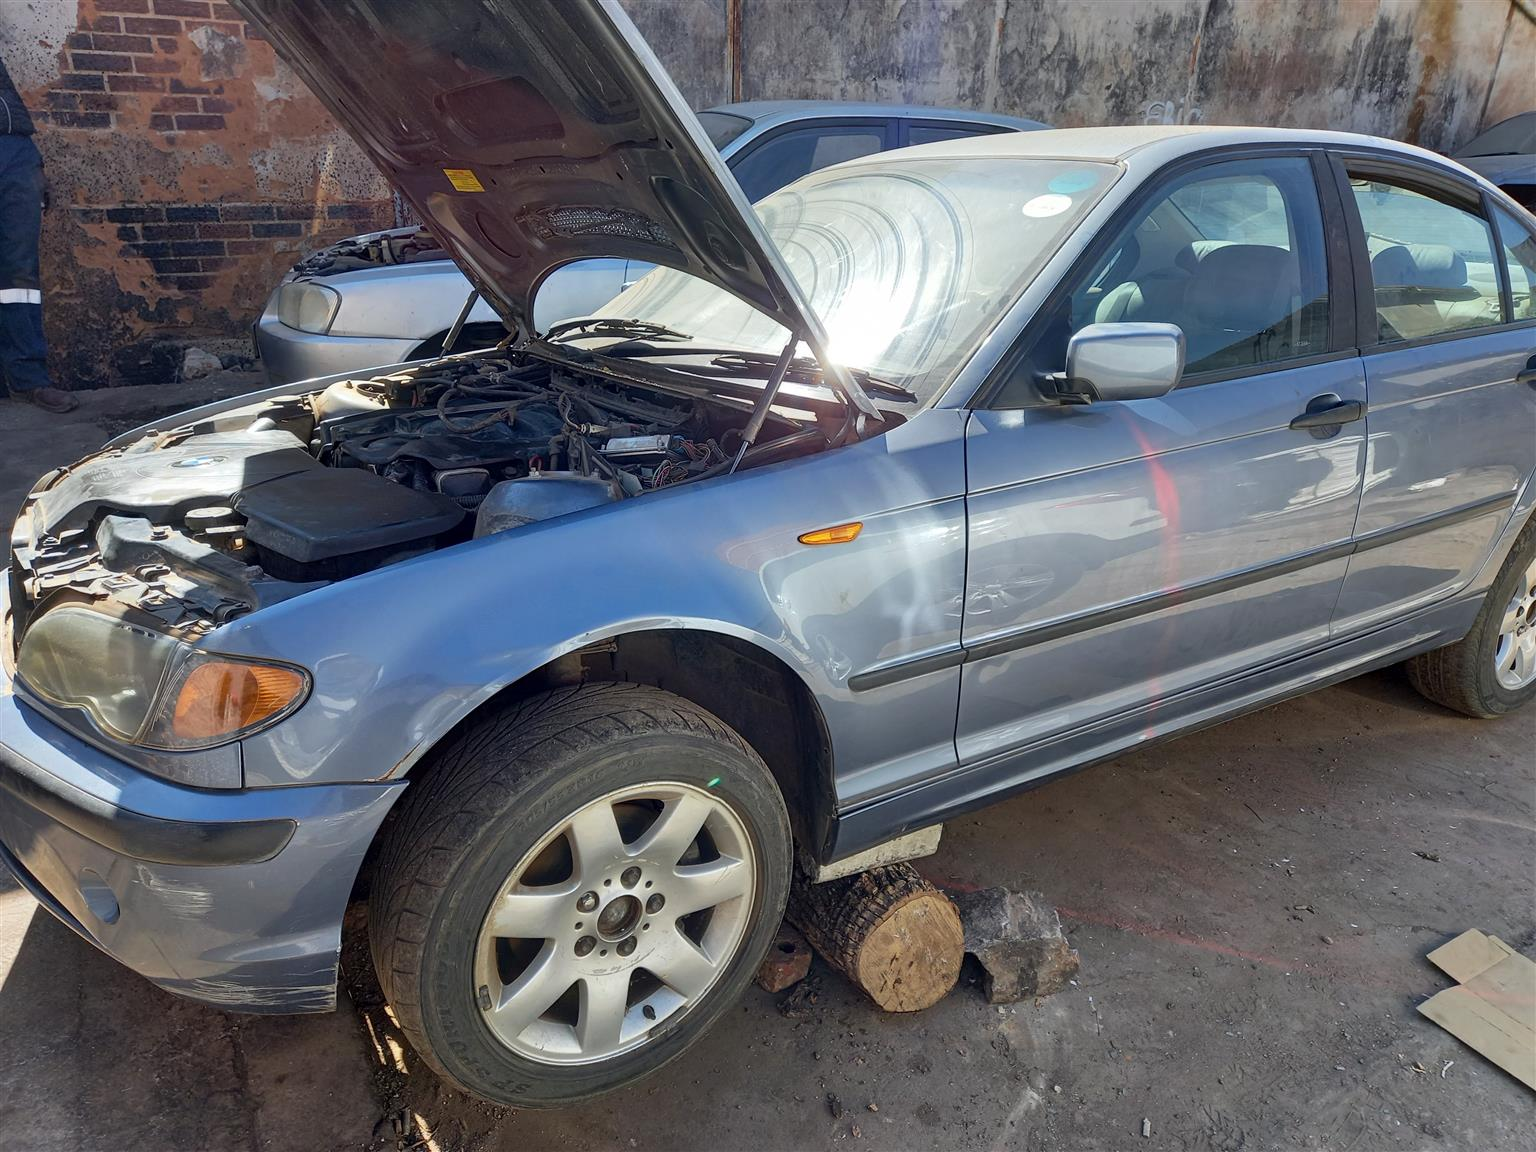 We are stripping BMW 318 2003 E46